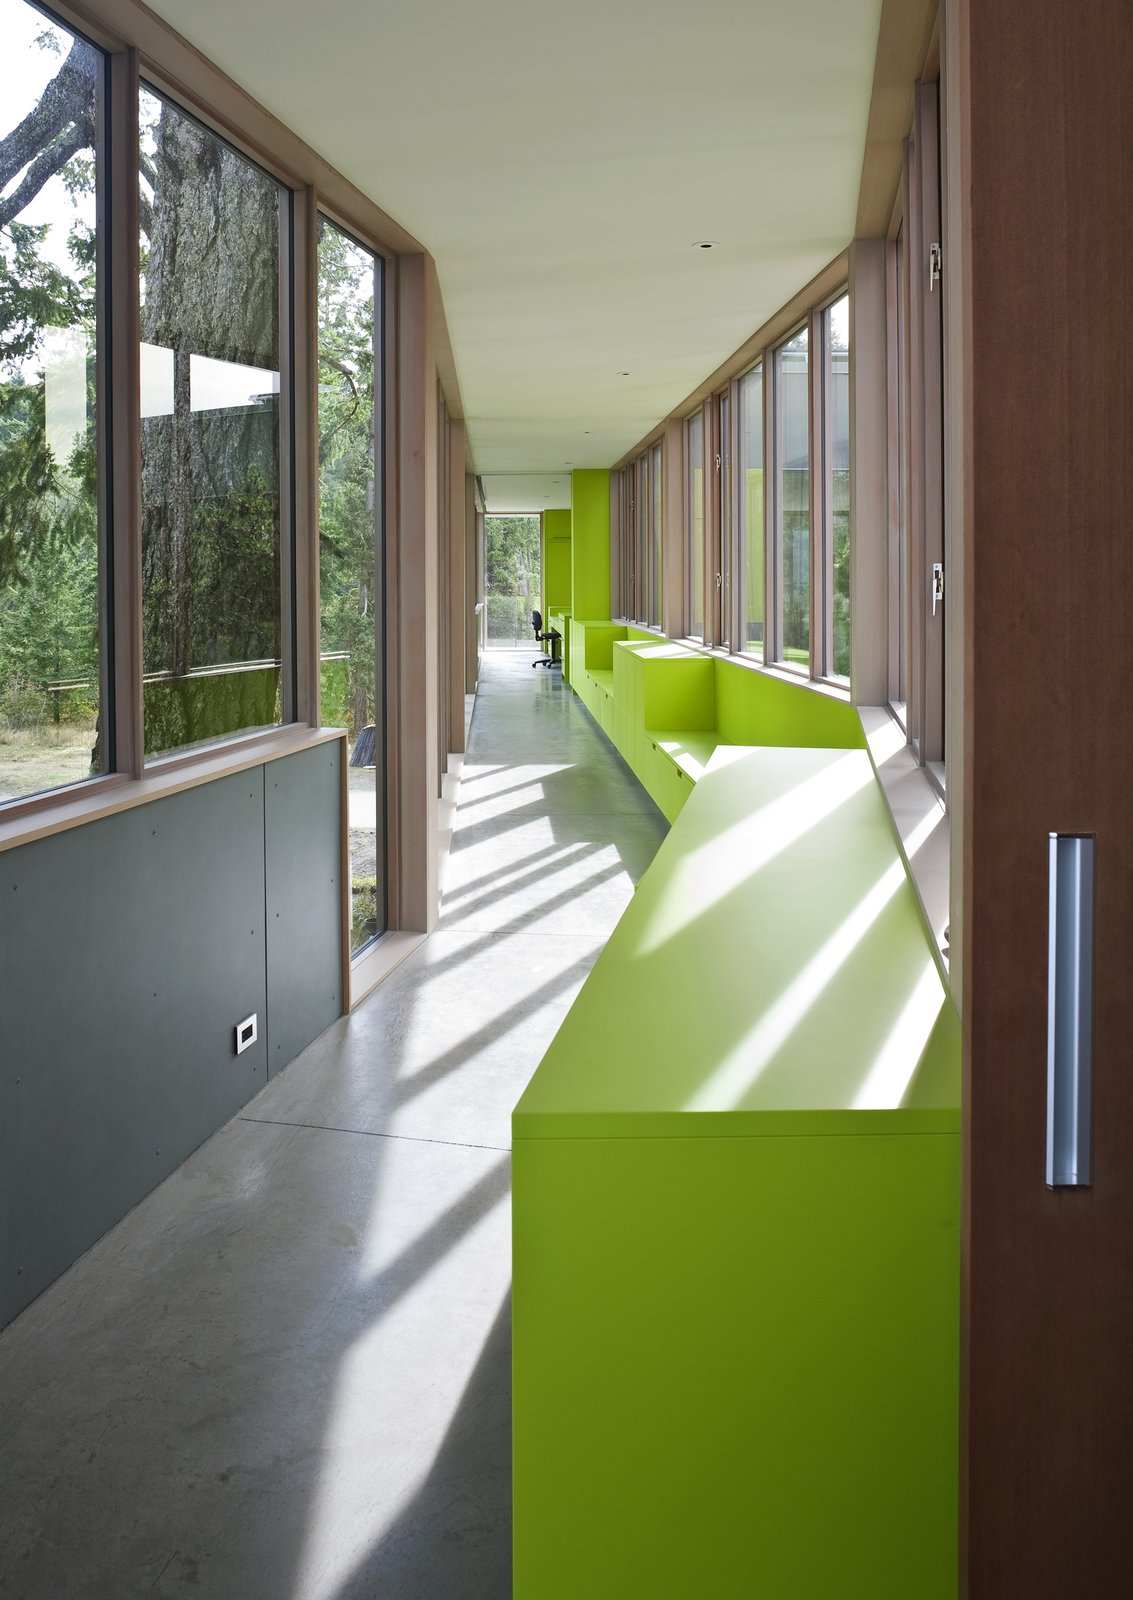 The semi-enclosed glass bridge walkway extends through the trees from the seasonally closable Guest house . The bright green color follows into the walkway, and covers the custom cabinetry and seating along the bridge.   #bridge #walkway #green #limegreen #glass #residential #hallway #beachhouse #beachhouses #bright #color #interstice #intersticearchitects #britishcolumbia #vancouverisland #bradlaughton #bradlaughtonphotography   TreeHugger